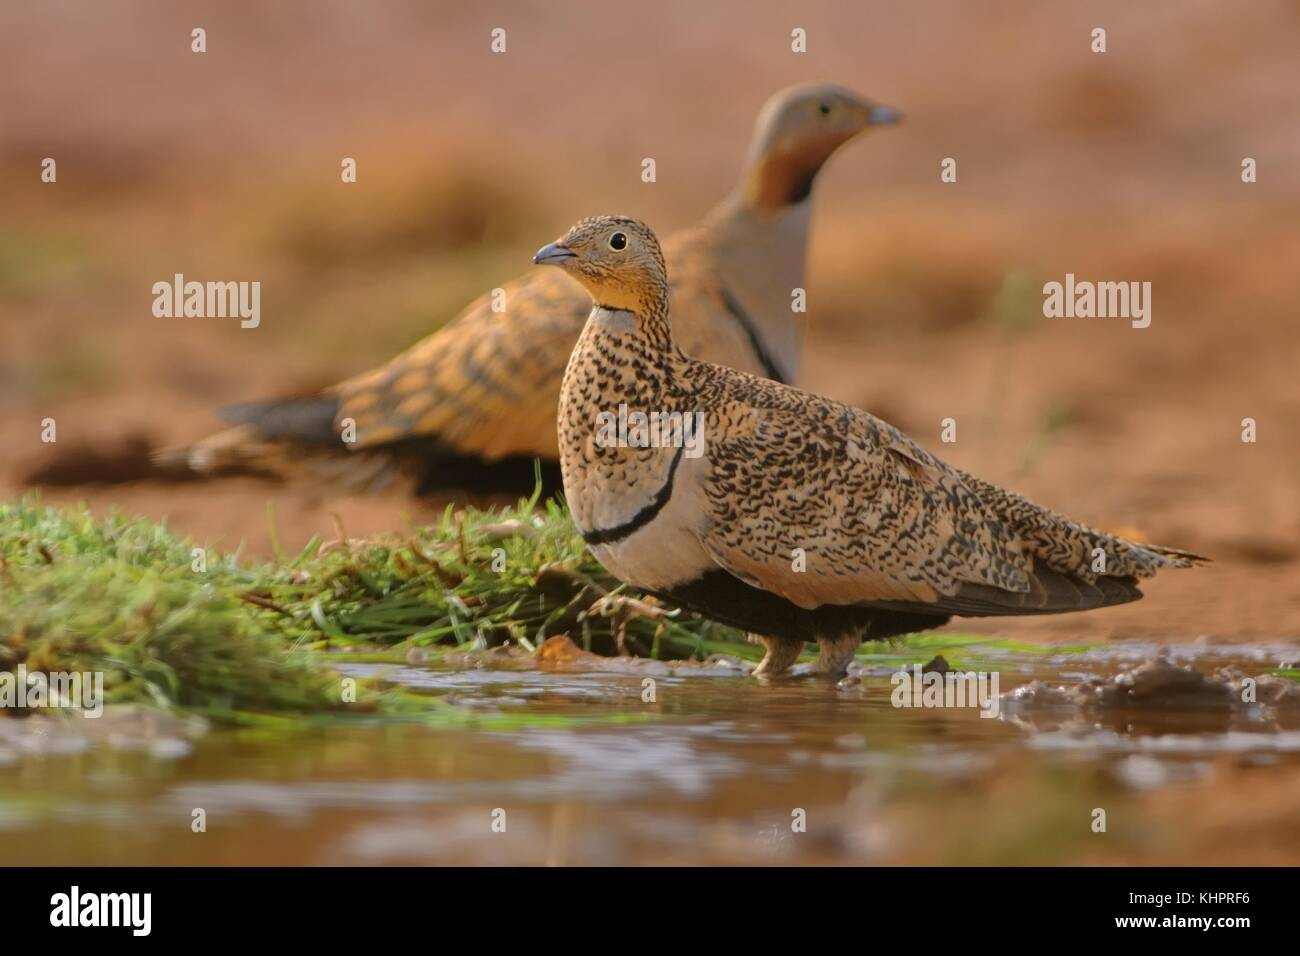 Two Black-bellied Sandgrouse (Pterocles orientalis) sitting next to the desert pool to quench thirst. - Stock Image